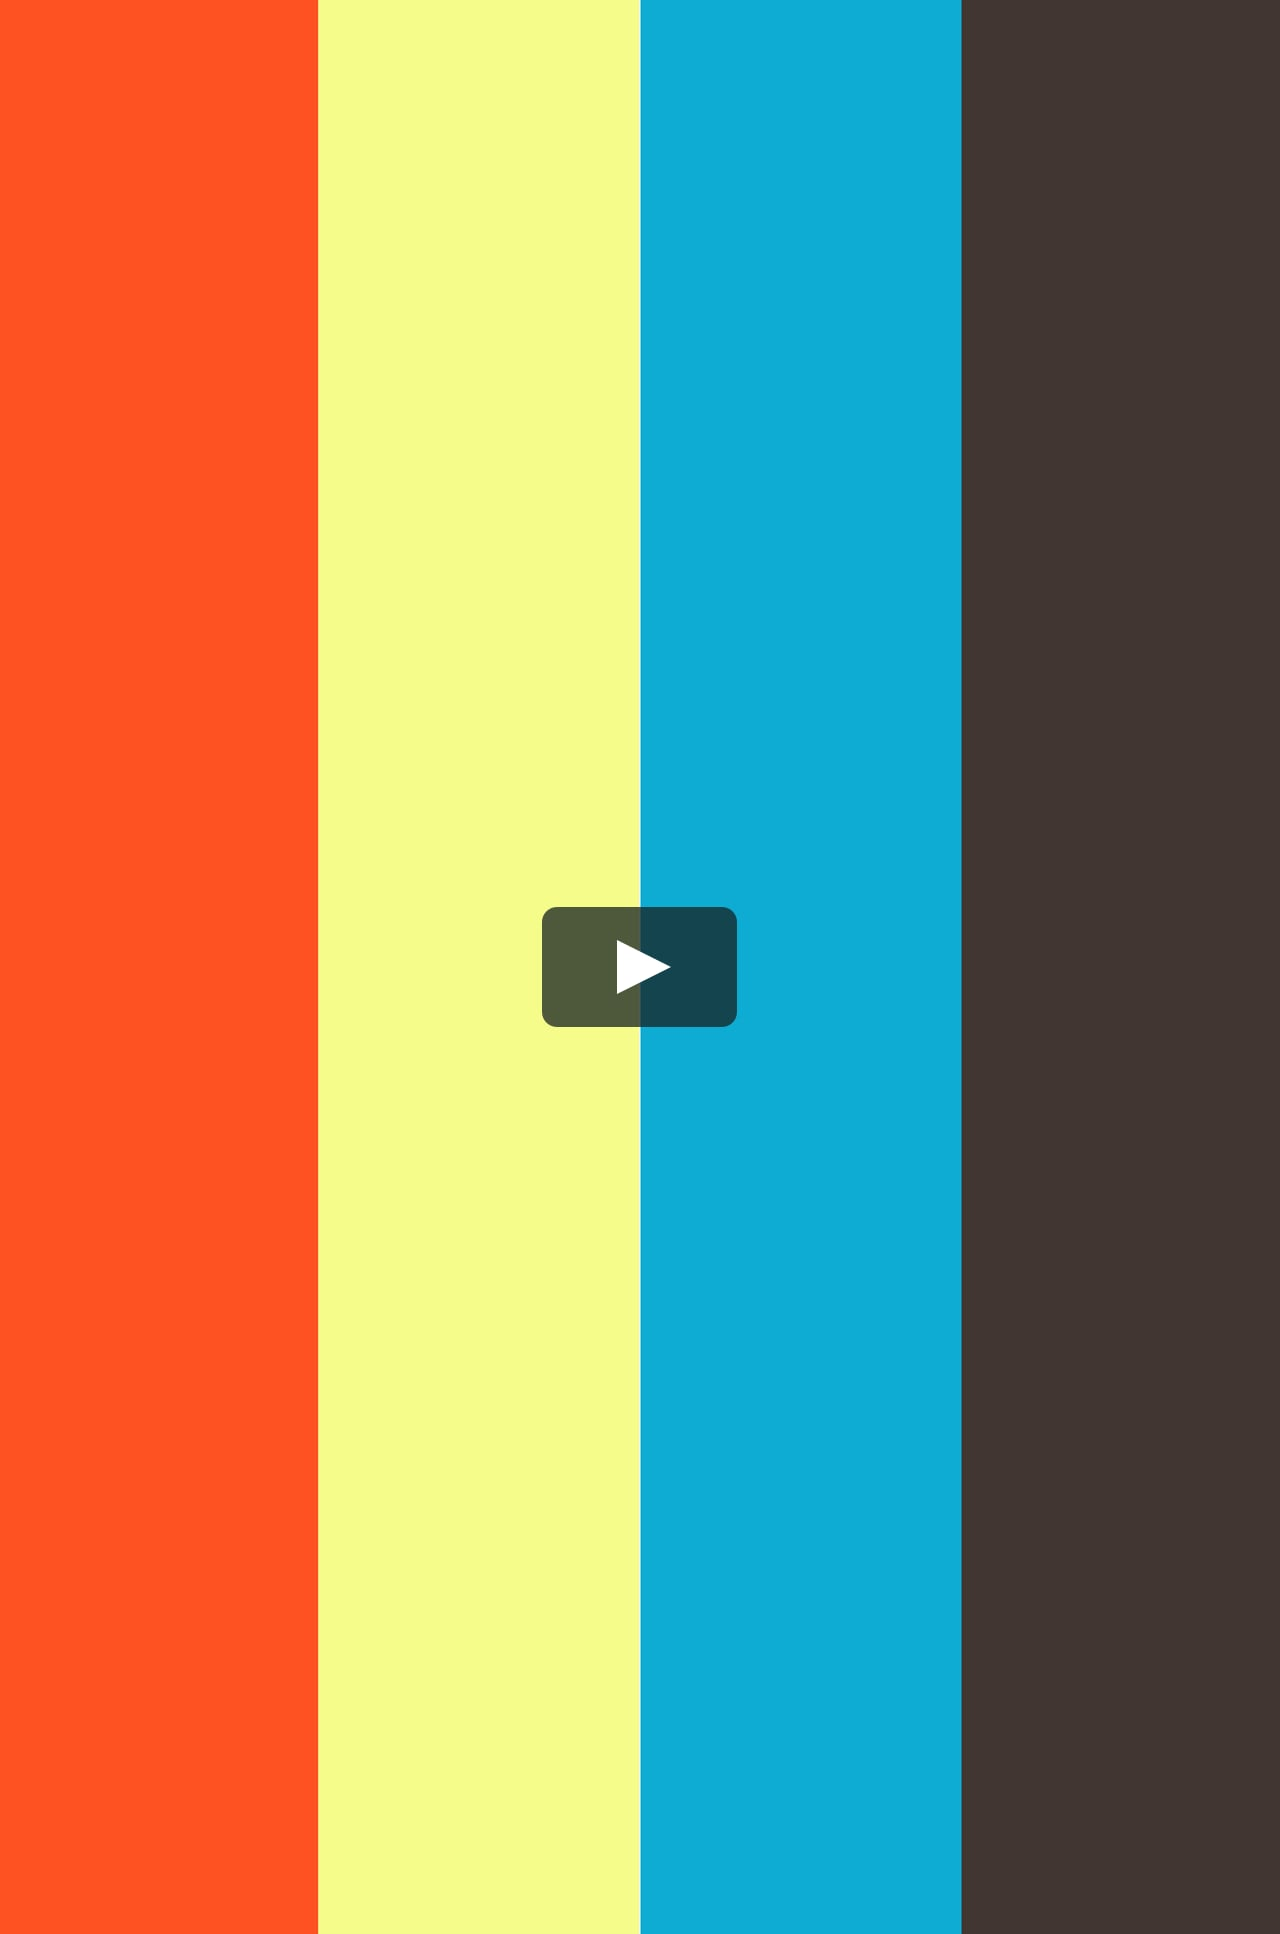 80375cb6a6 DR. MARTENS WOMENS CLARISSA II QUAD CHUNKY SANDAL IN BLACK on Vimeo